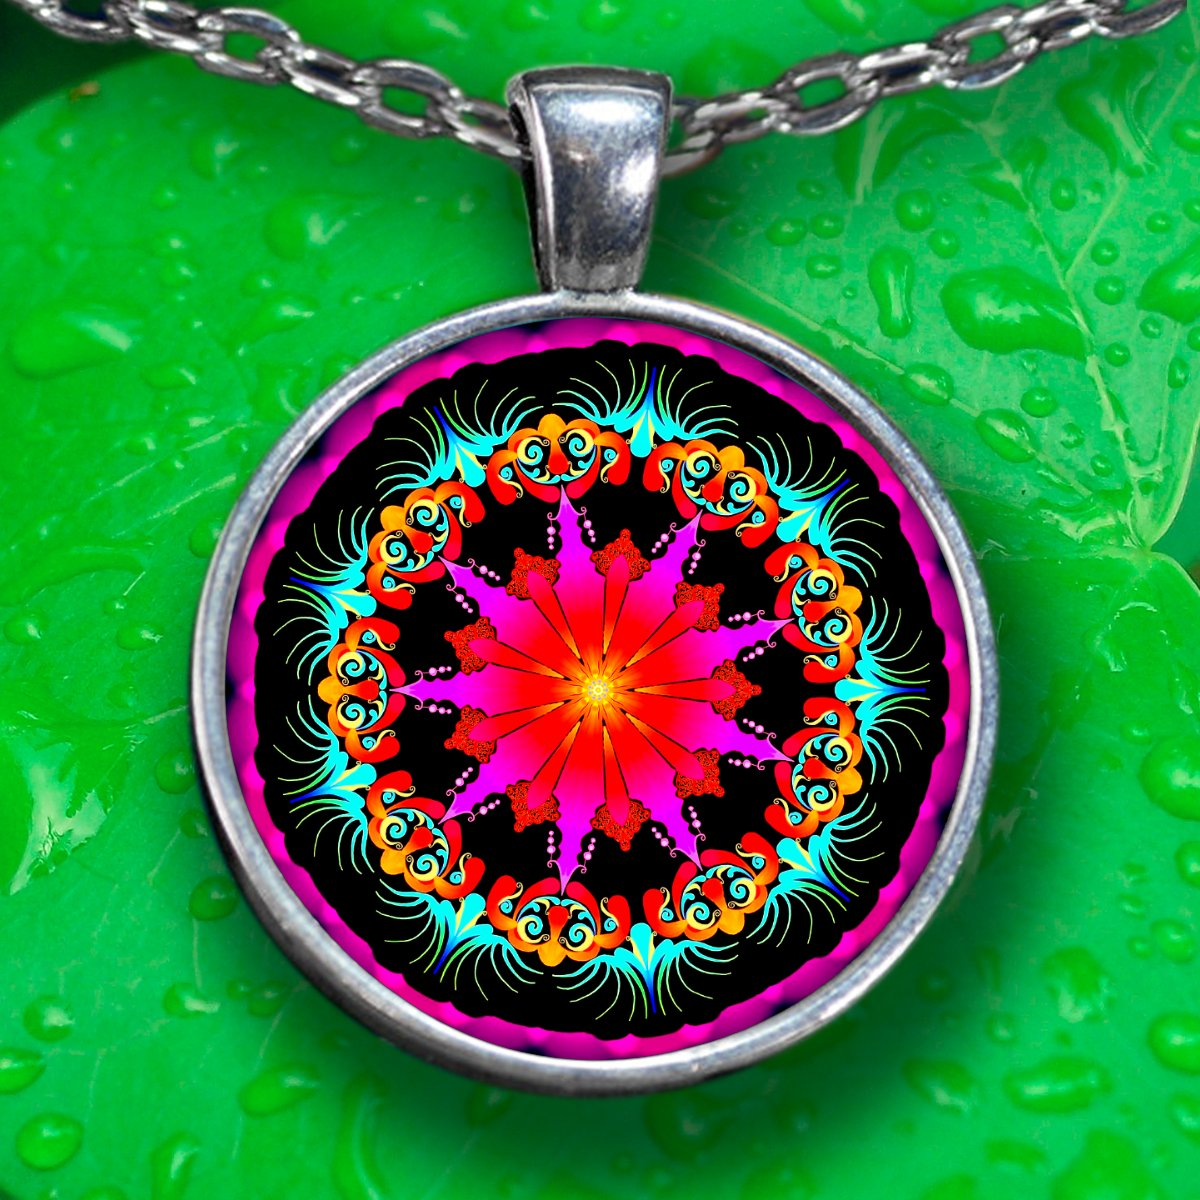 Pendant Necklace - Silver Plated - FREE Shipping!